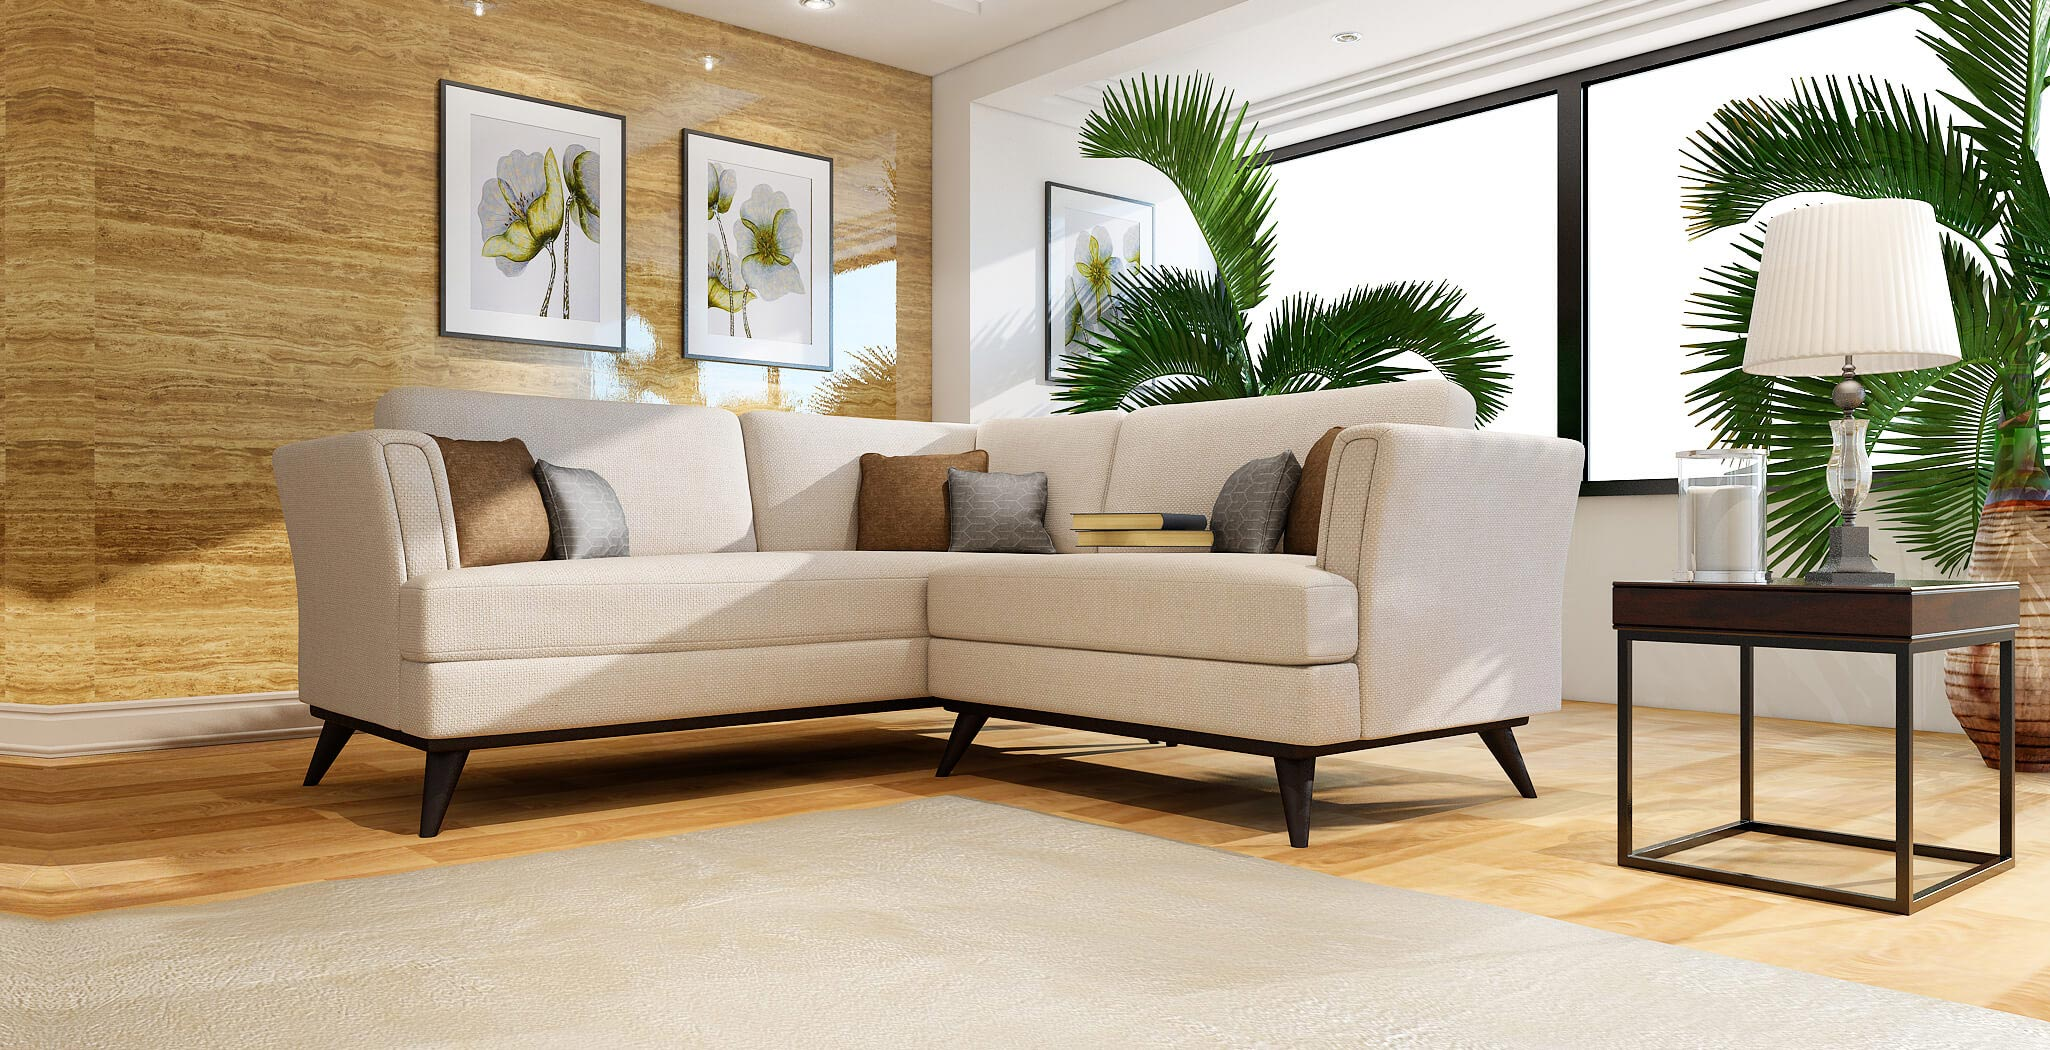 antalya sectional furniture gallery 1